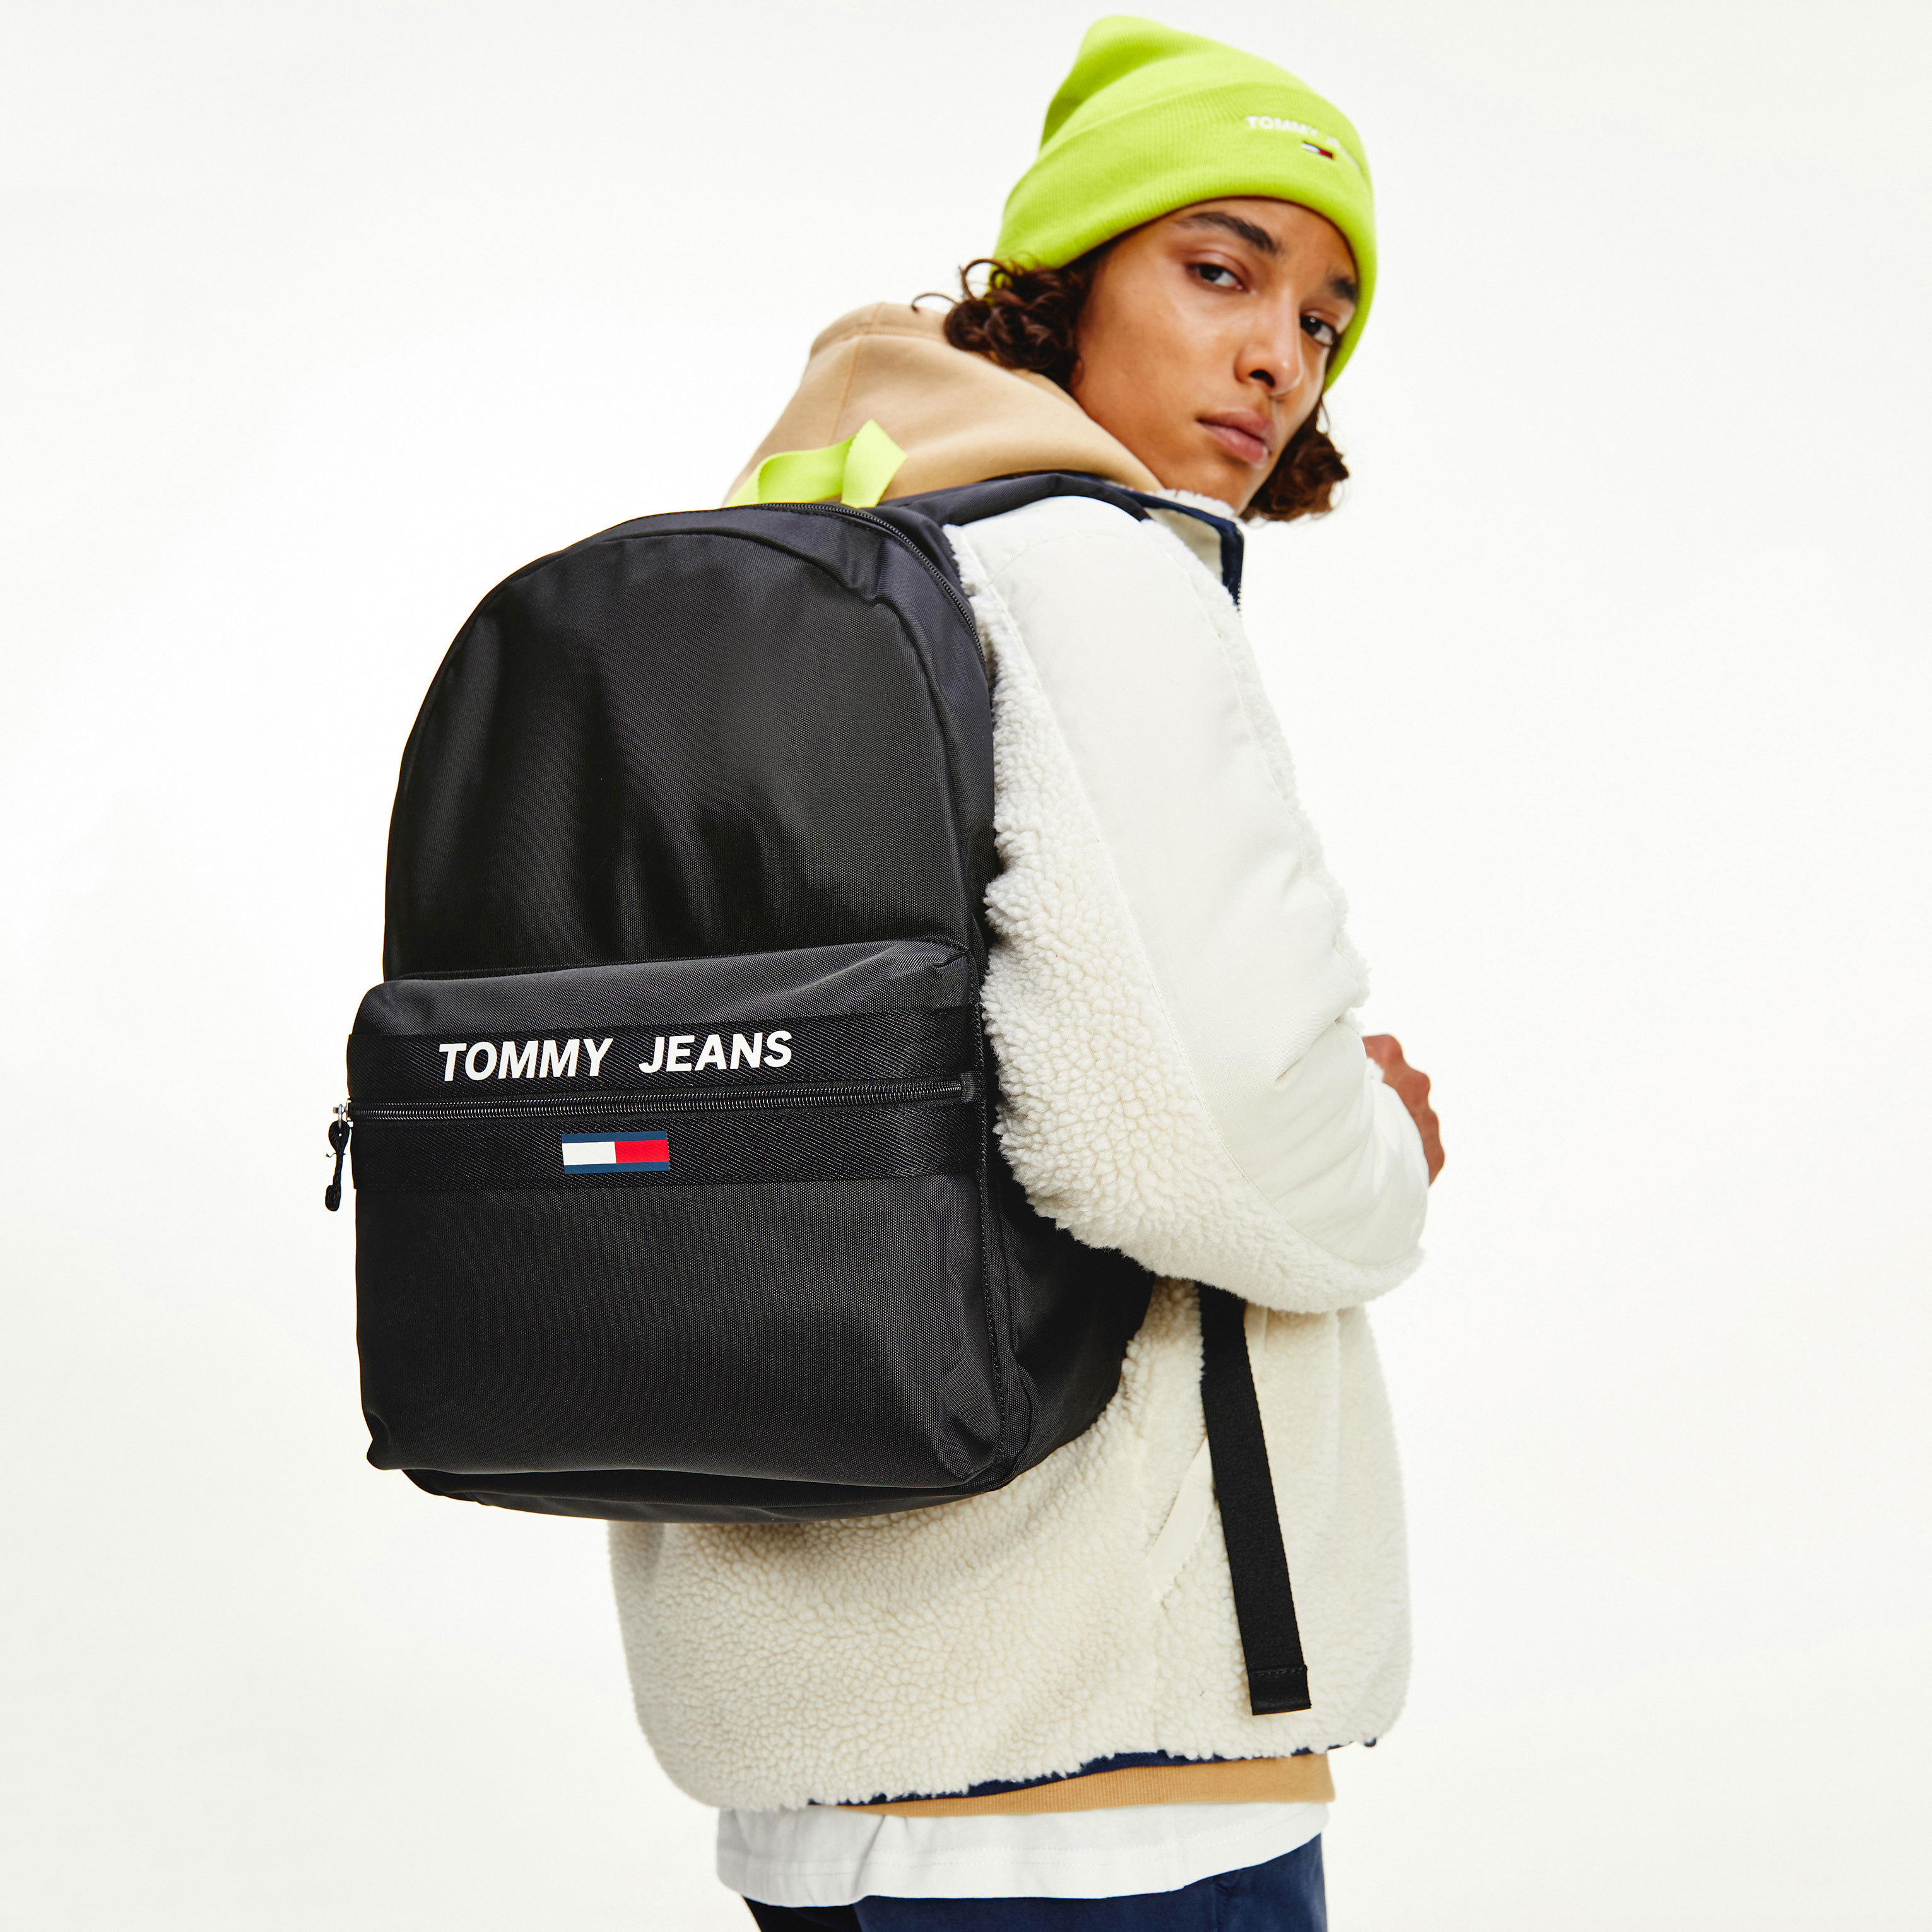 TOMMY JEANS Marroquinería Mochila Tjm Essential Backpack AM0AM07766-BDS